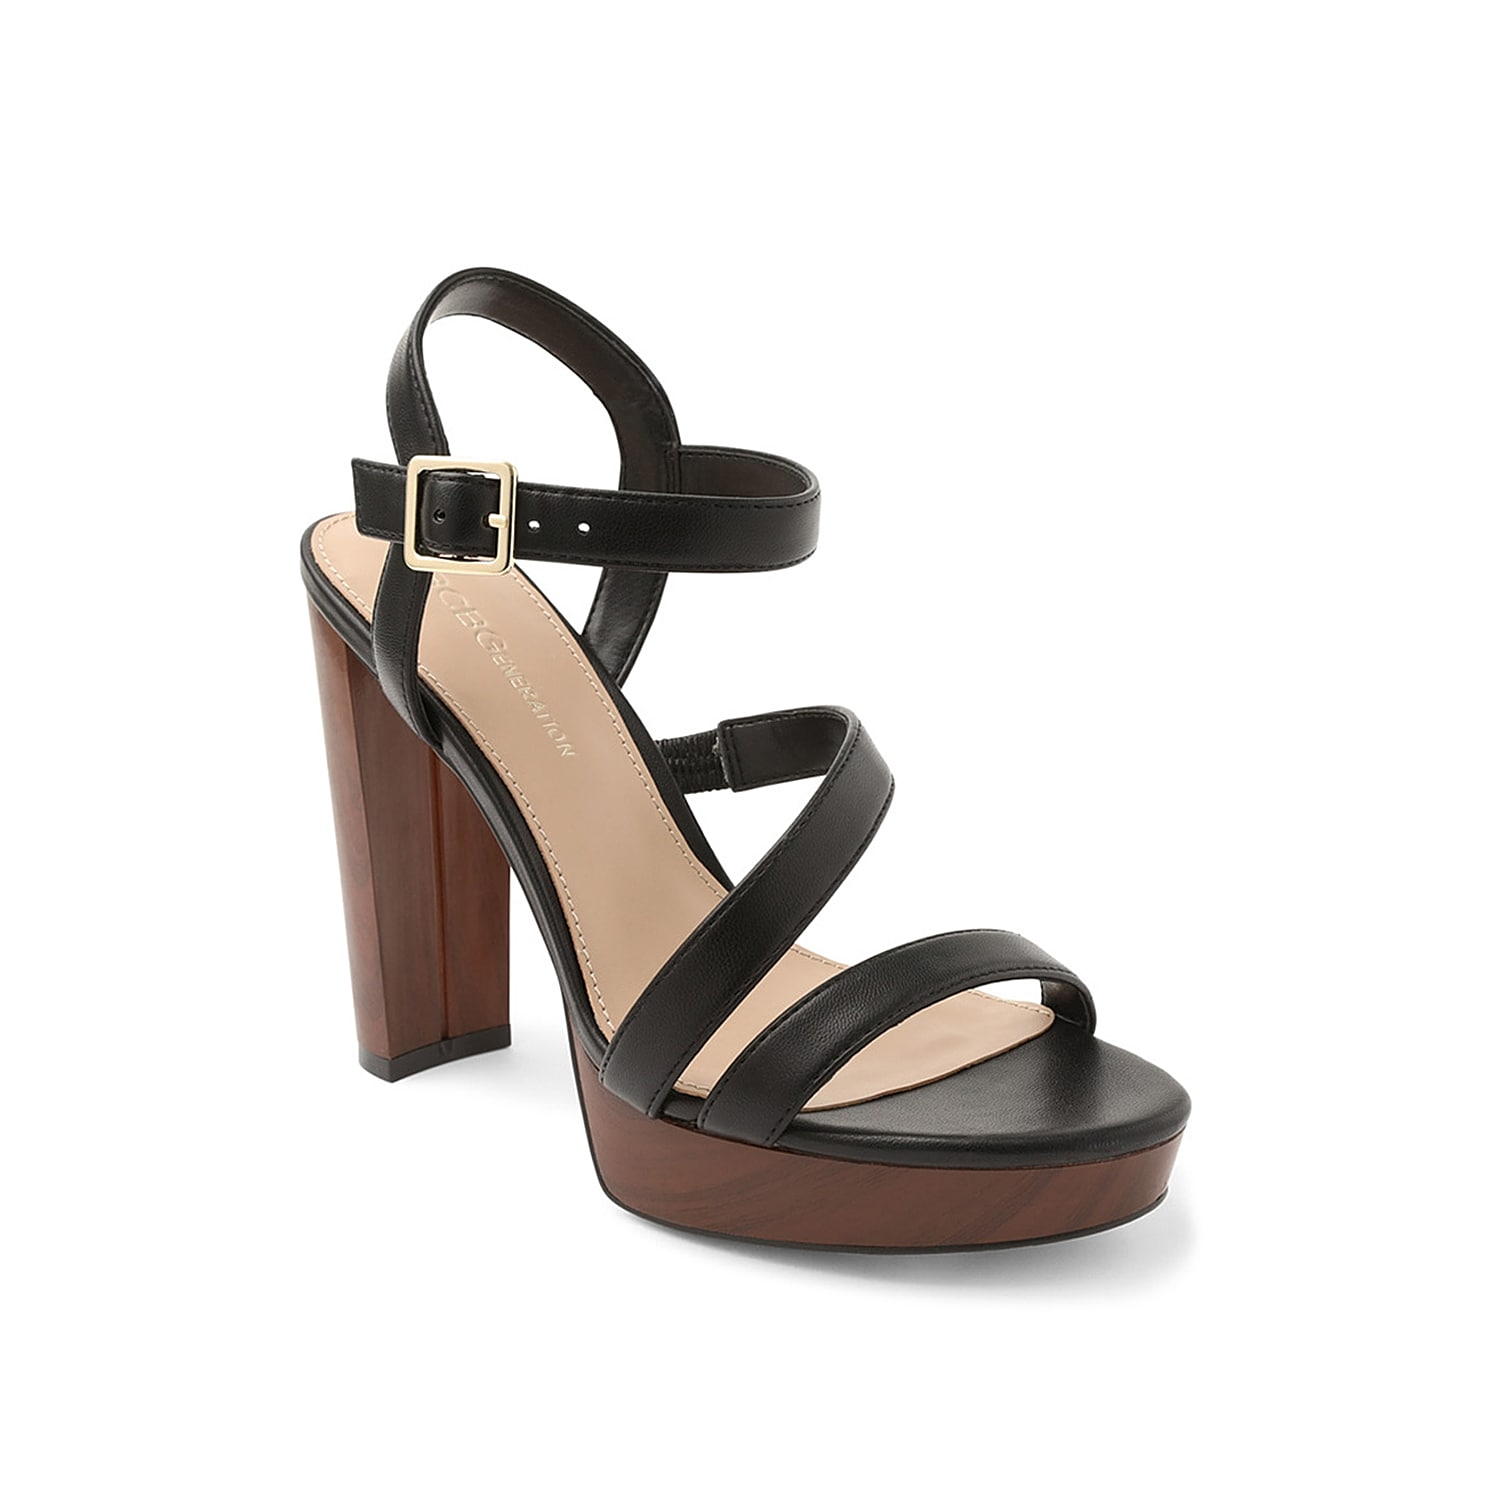 Make a style statement in the Onnia platform sandal from BCBGeneration. A towering faux wood heel and strappy upper give this pair a retro finish.